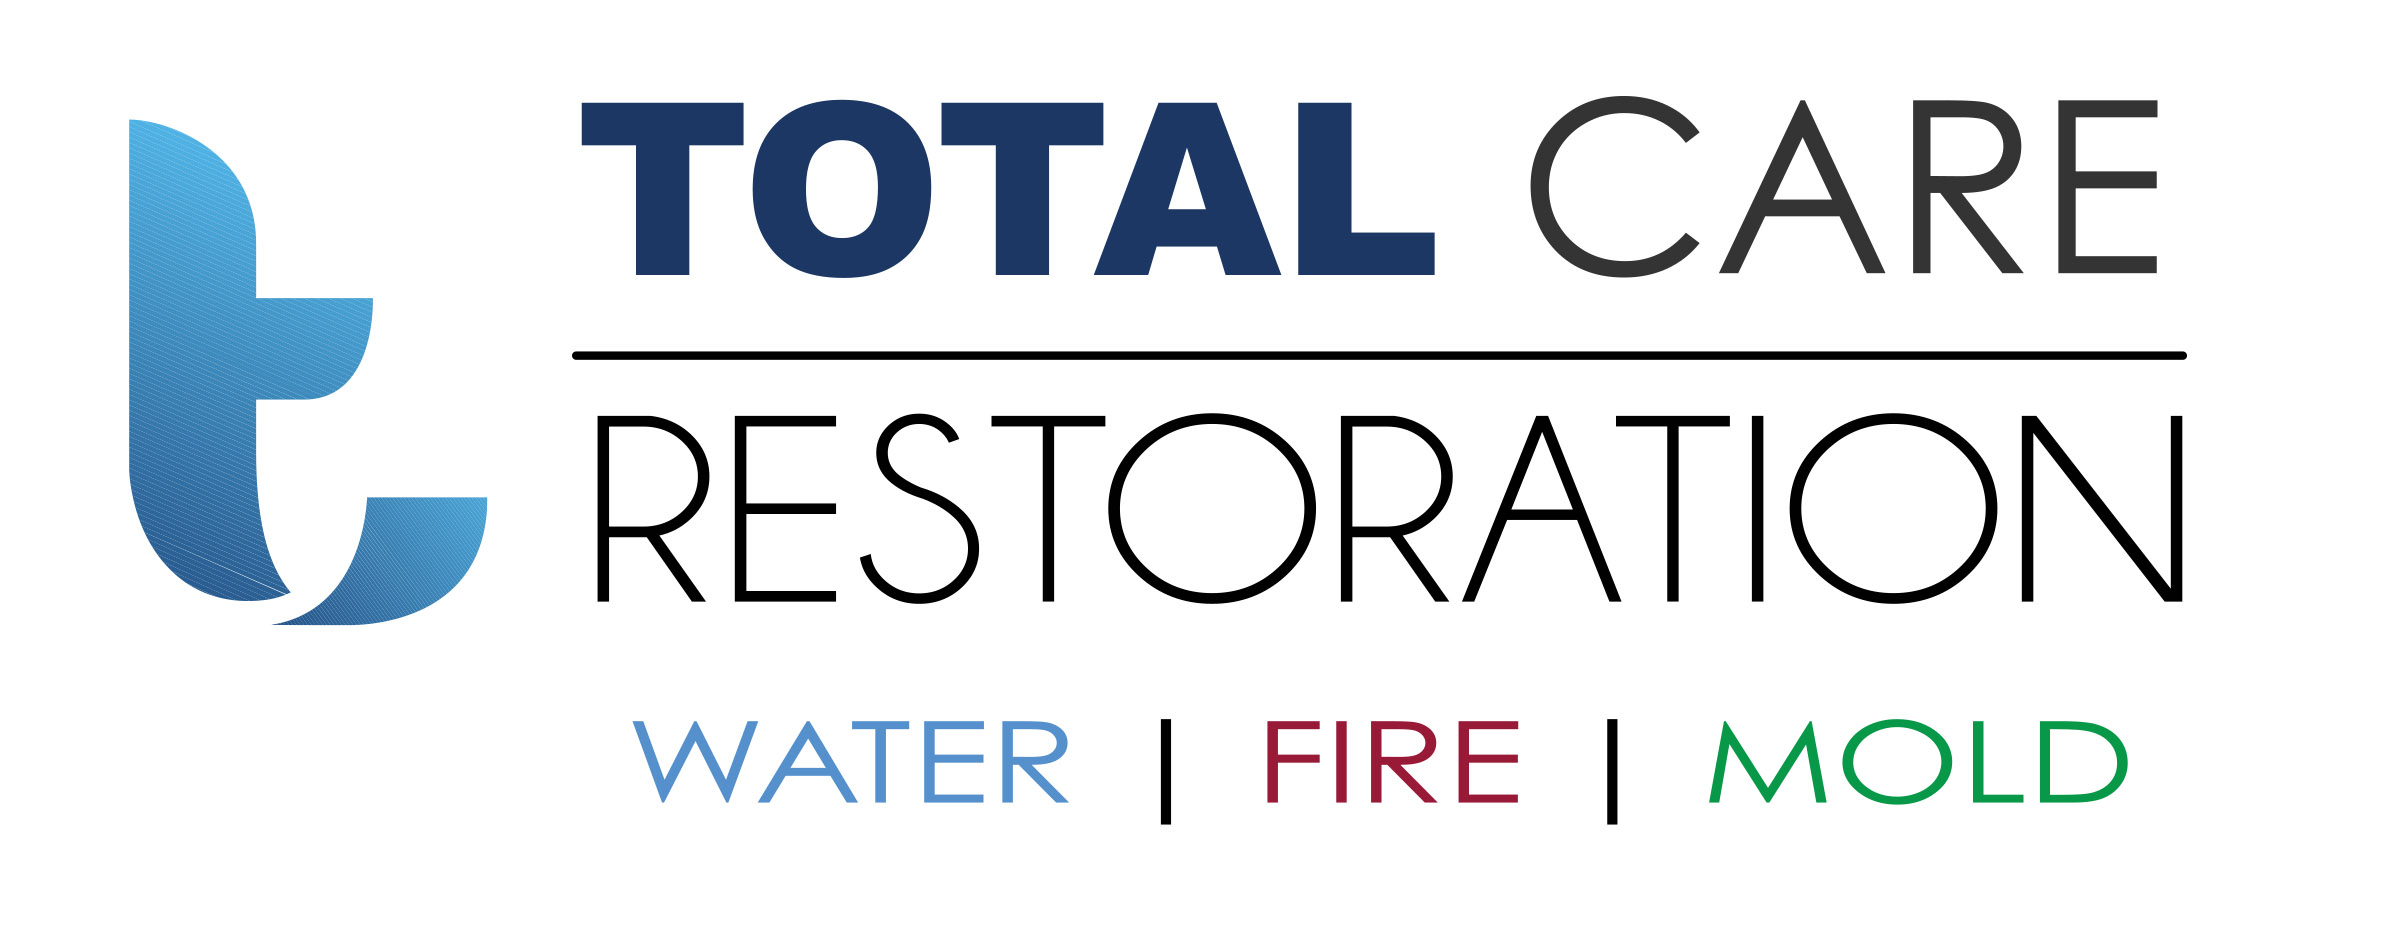 Water, Fire & Mold Restoration Company Logo